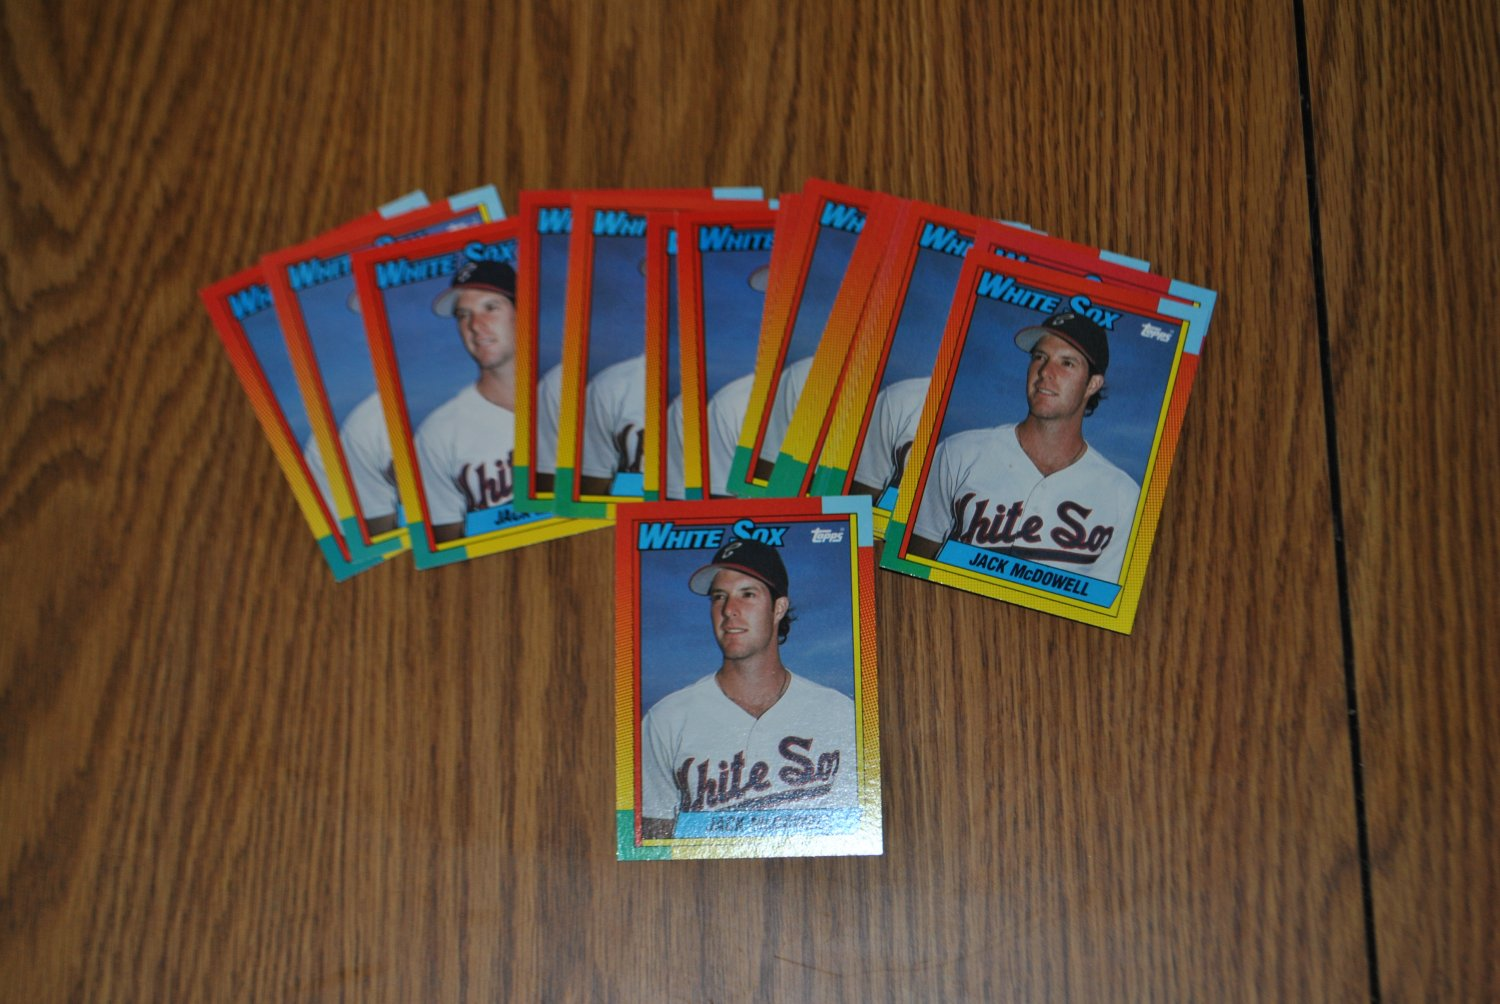 1990 topps traded jack mcdowell lot.